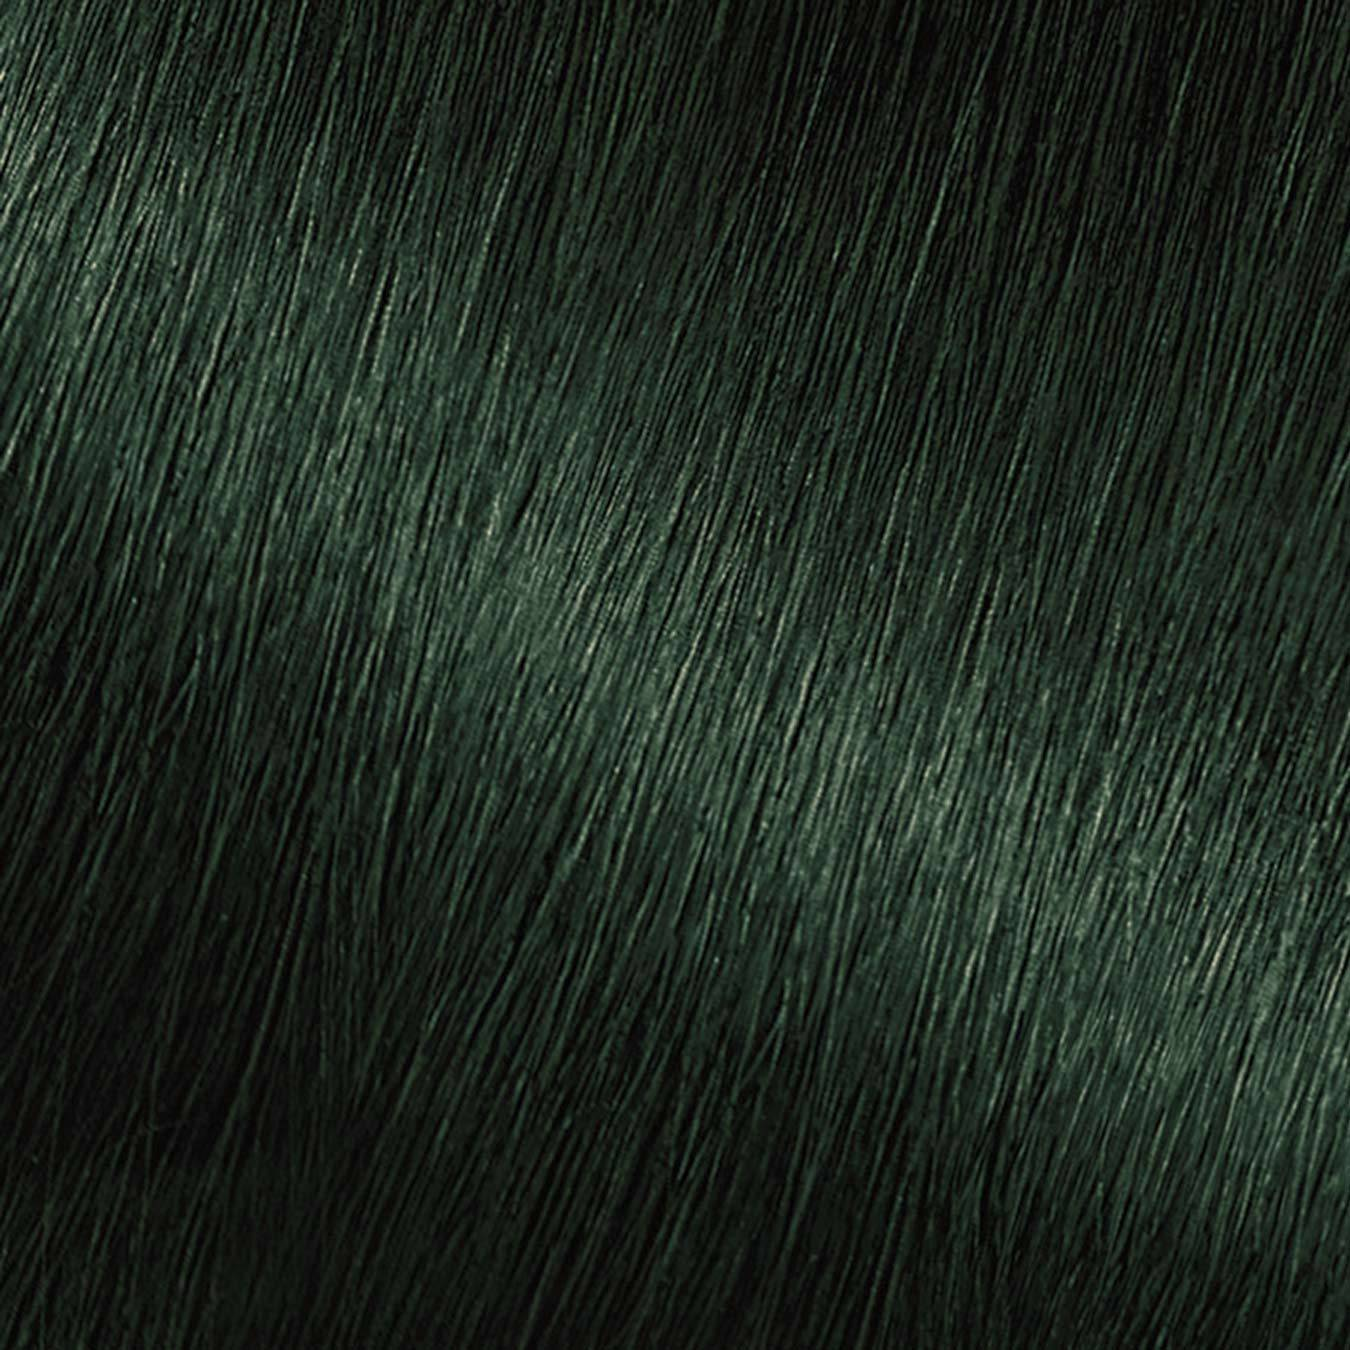 Hair Swatch of Nutrisse Ultra Color EM1 Dark Matcha.